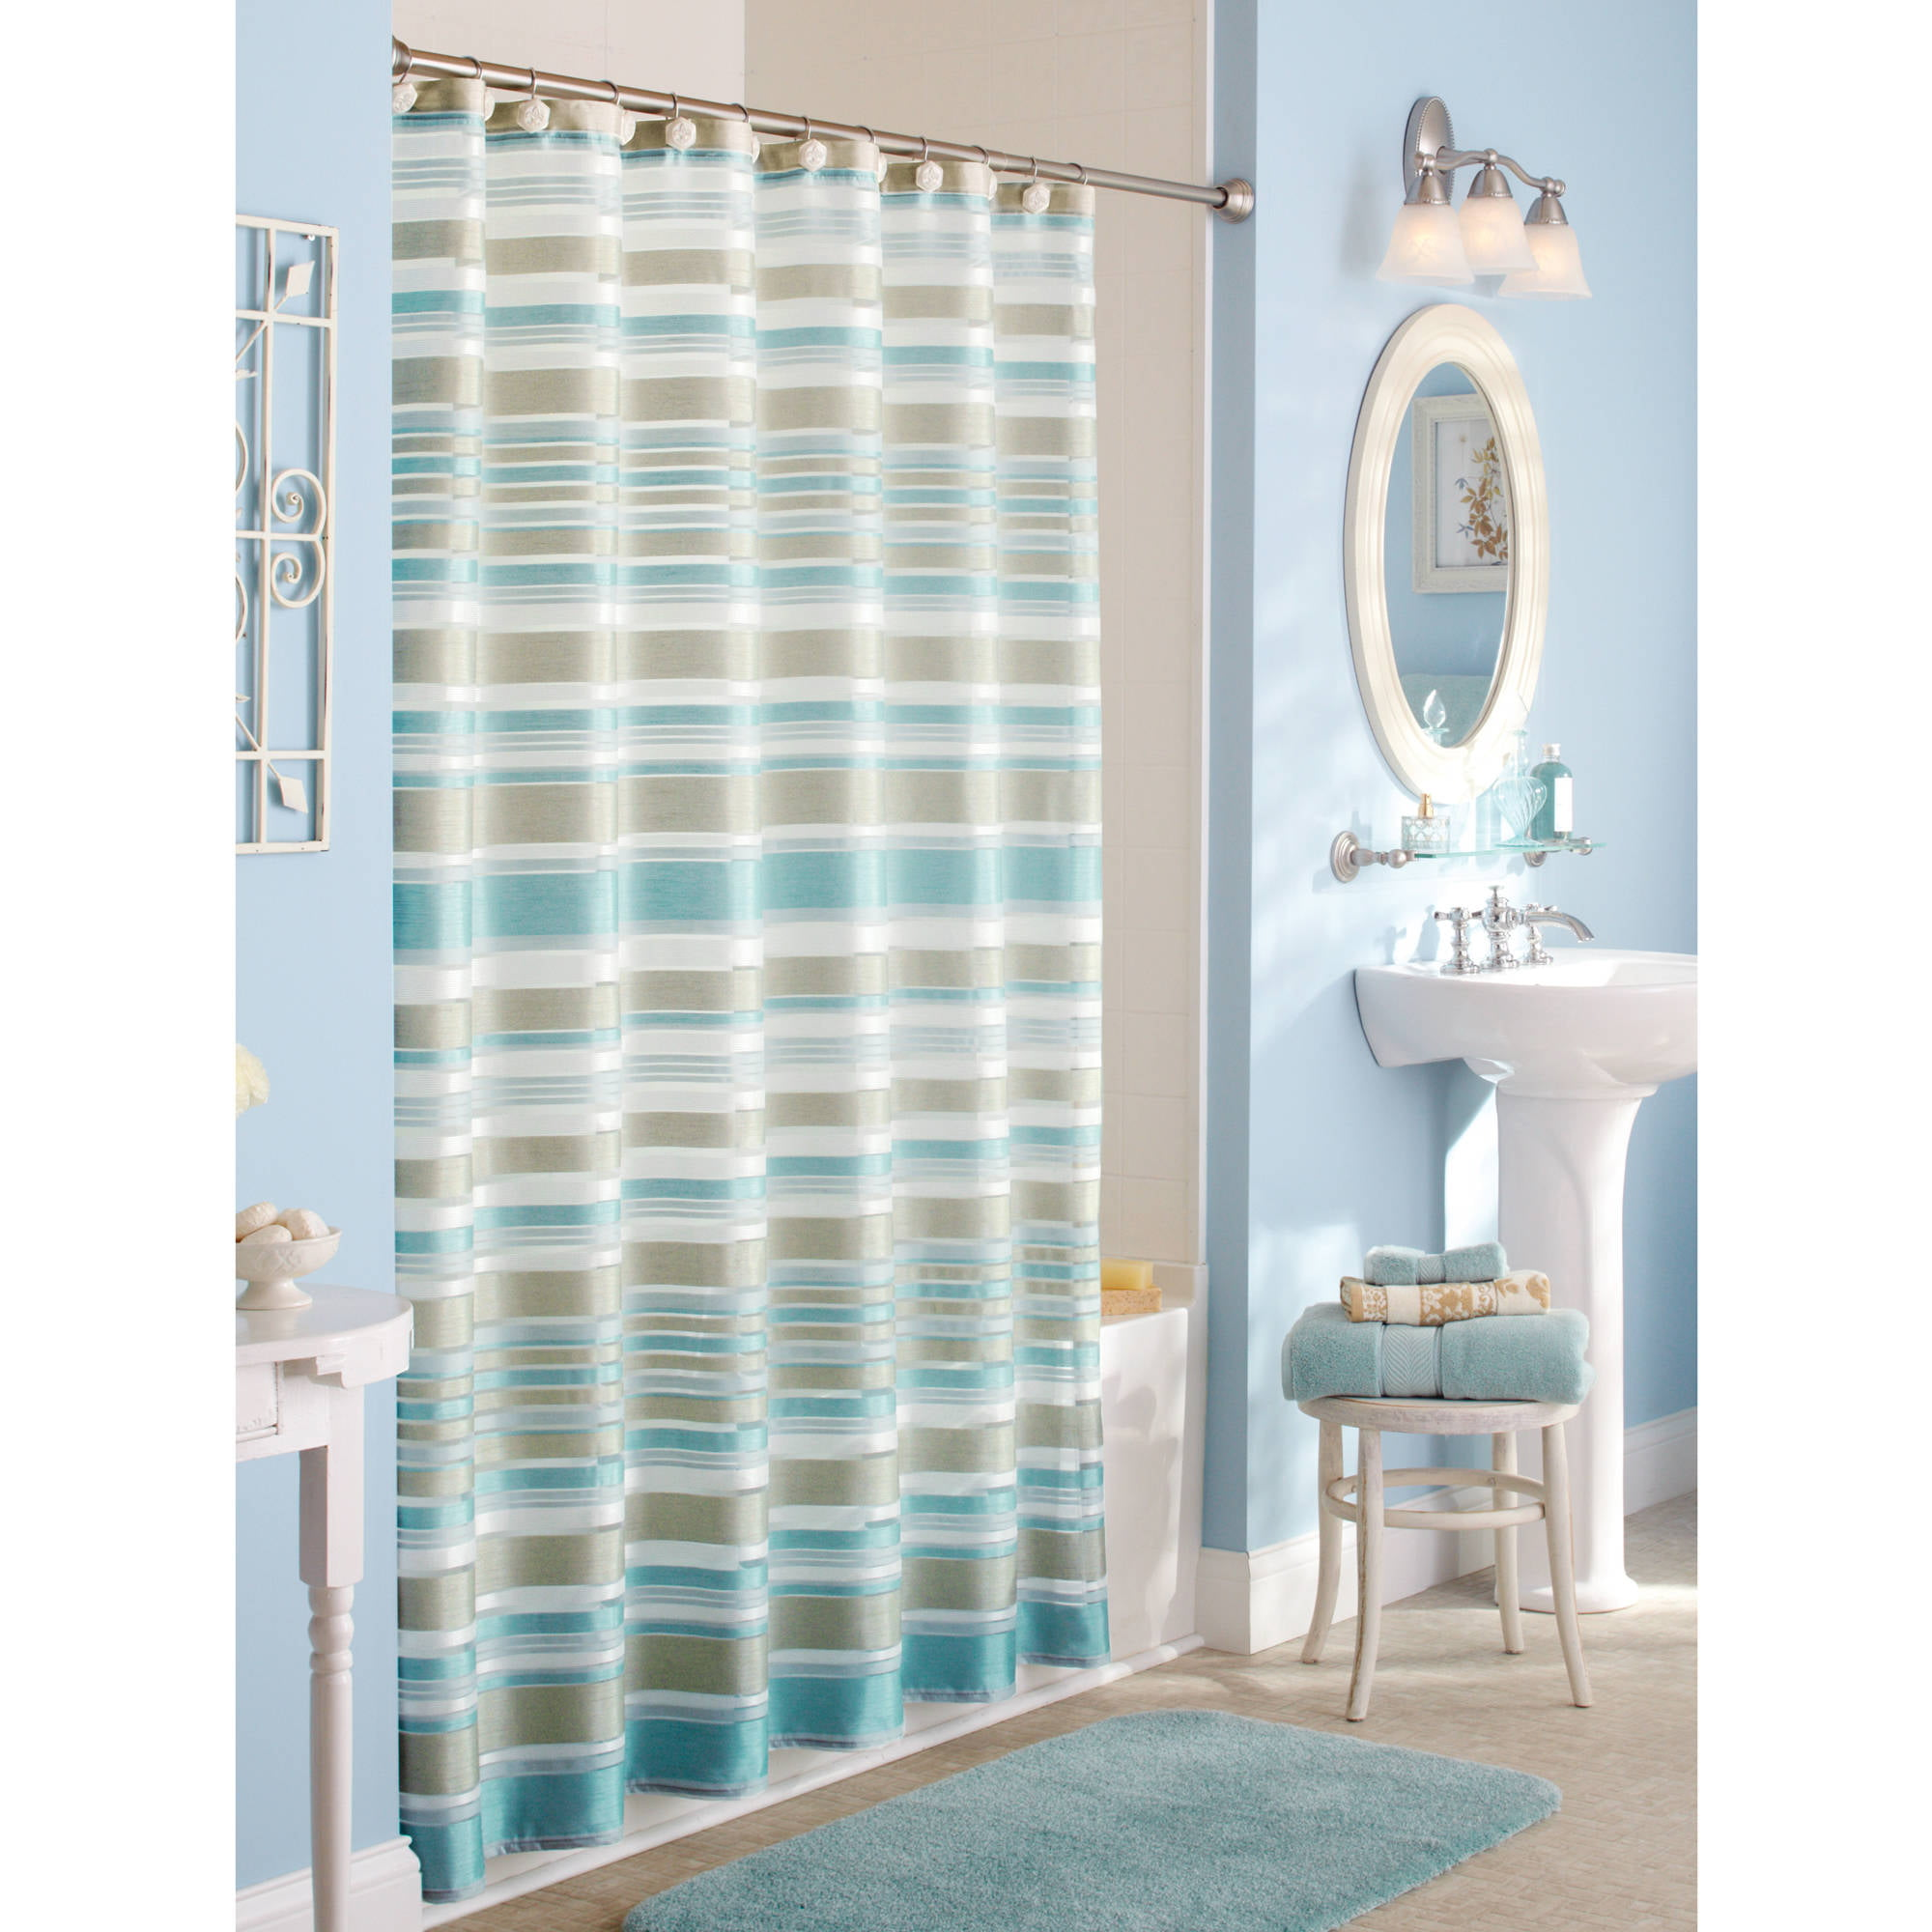 teal striped shower curtain. Better Homes and Gardens Classic Stripe Fabric Shower Curtain  Walmart com